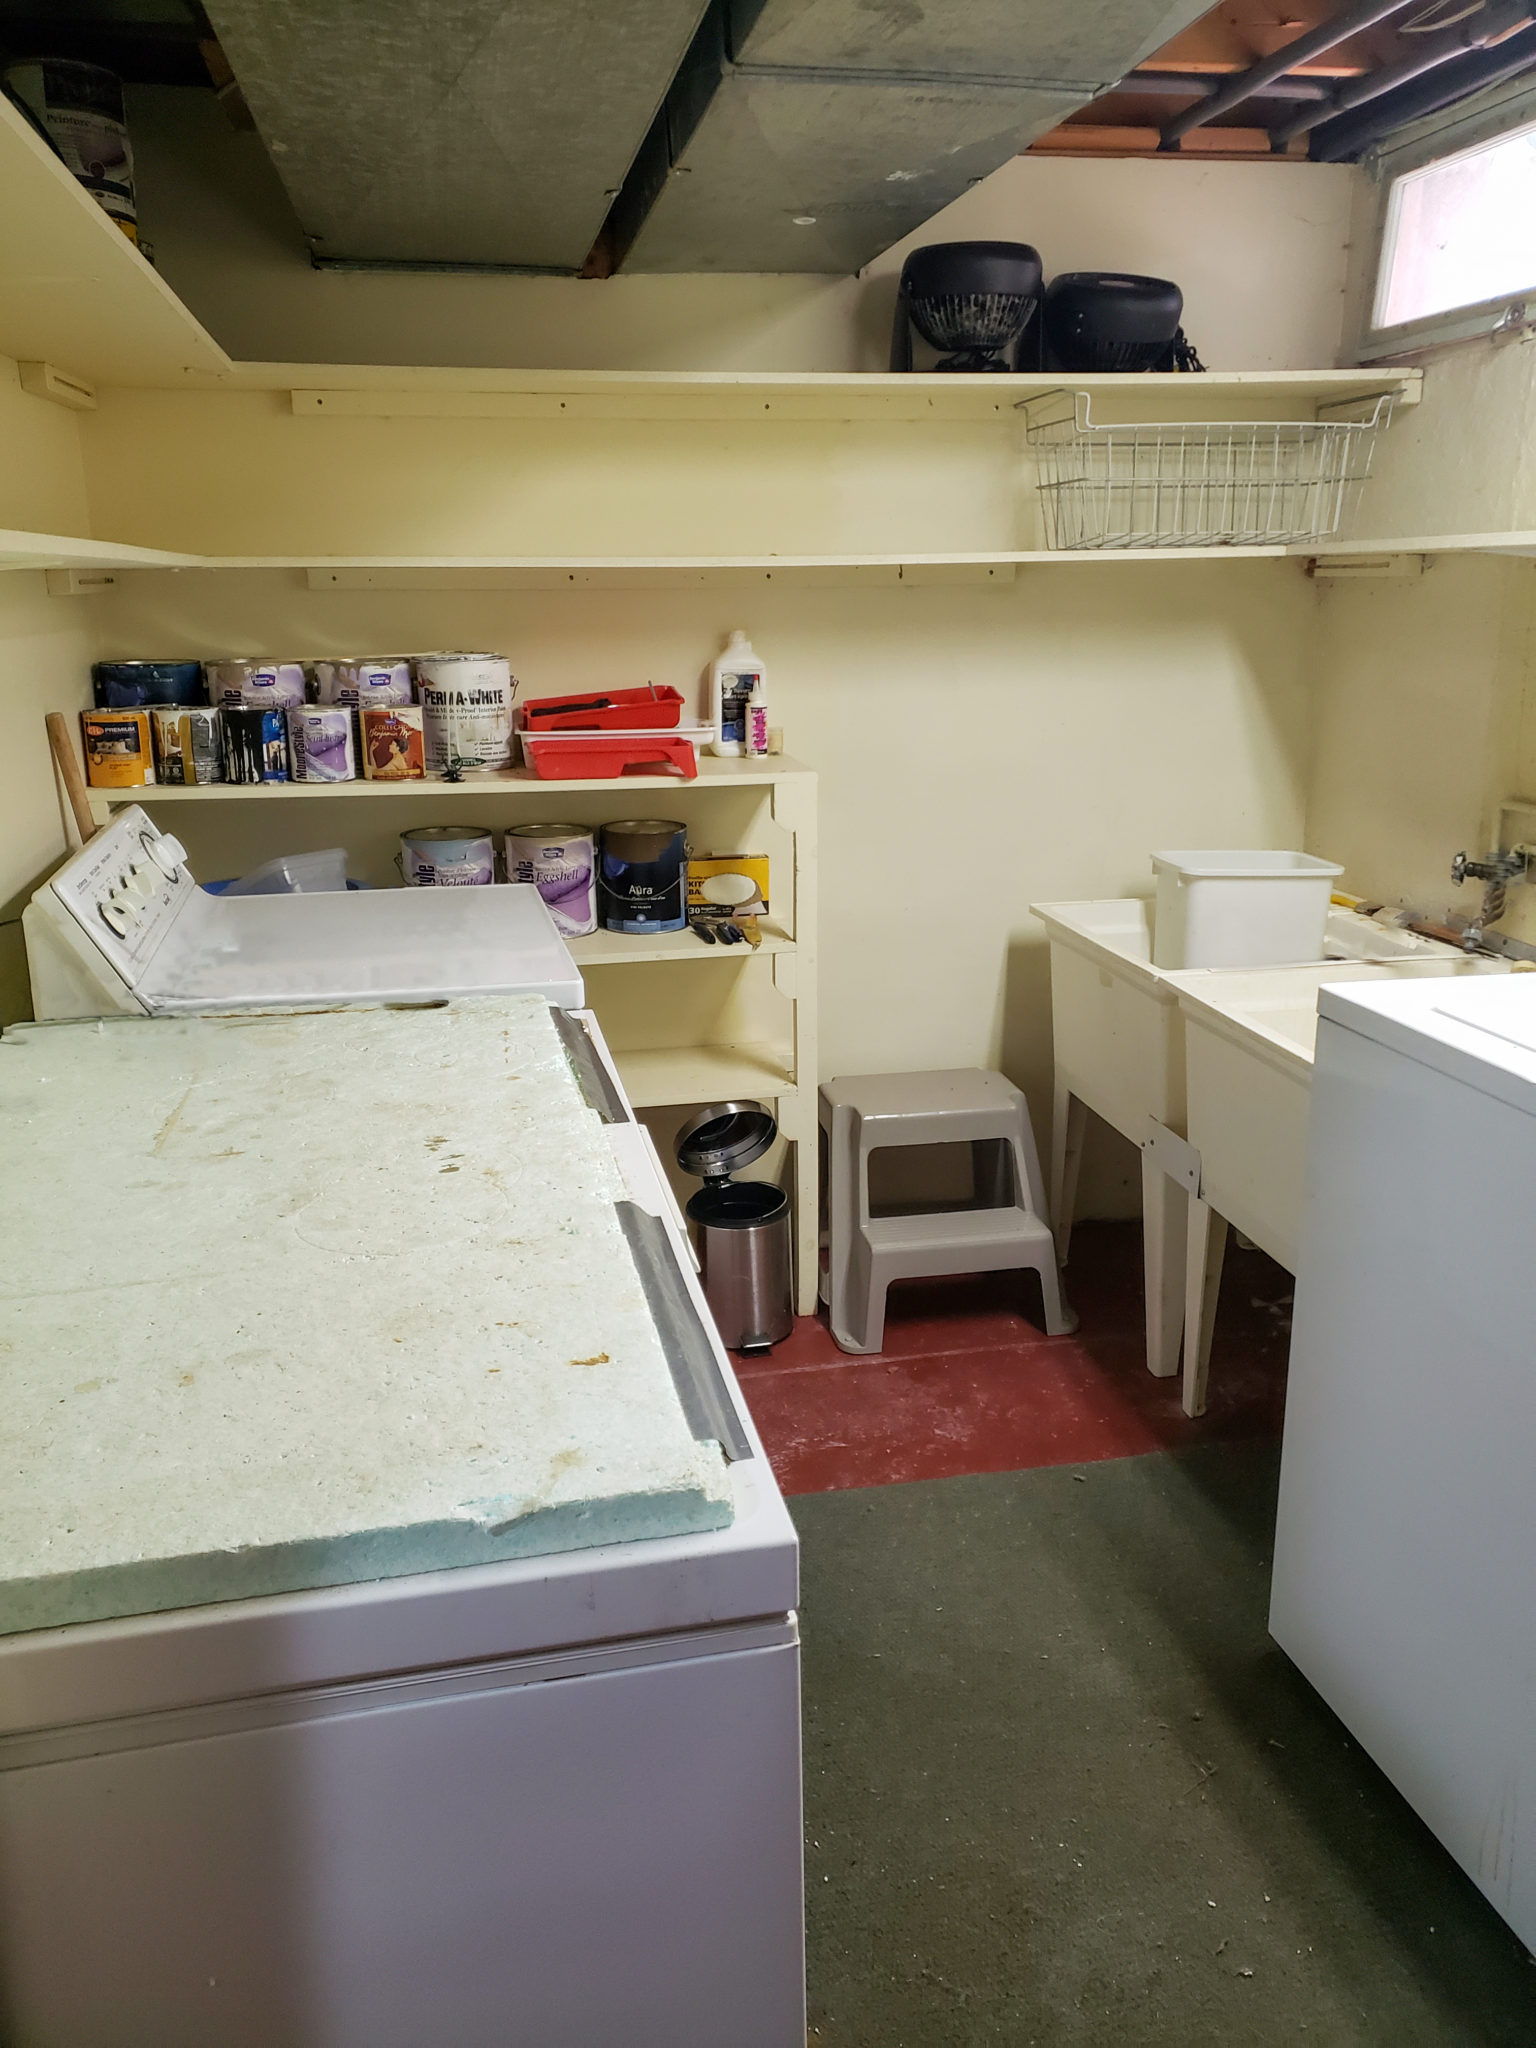 Laundry area - After